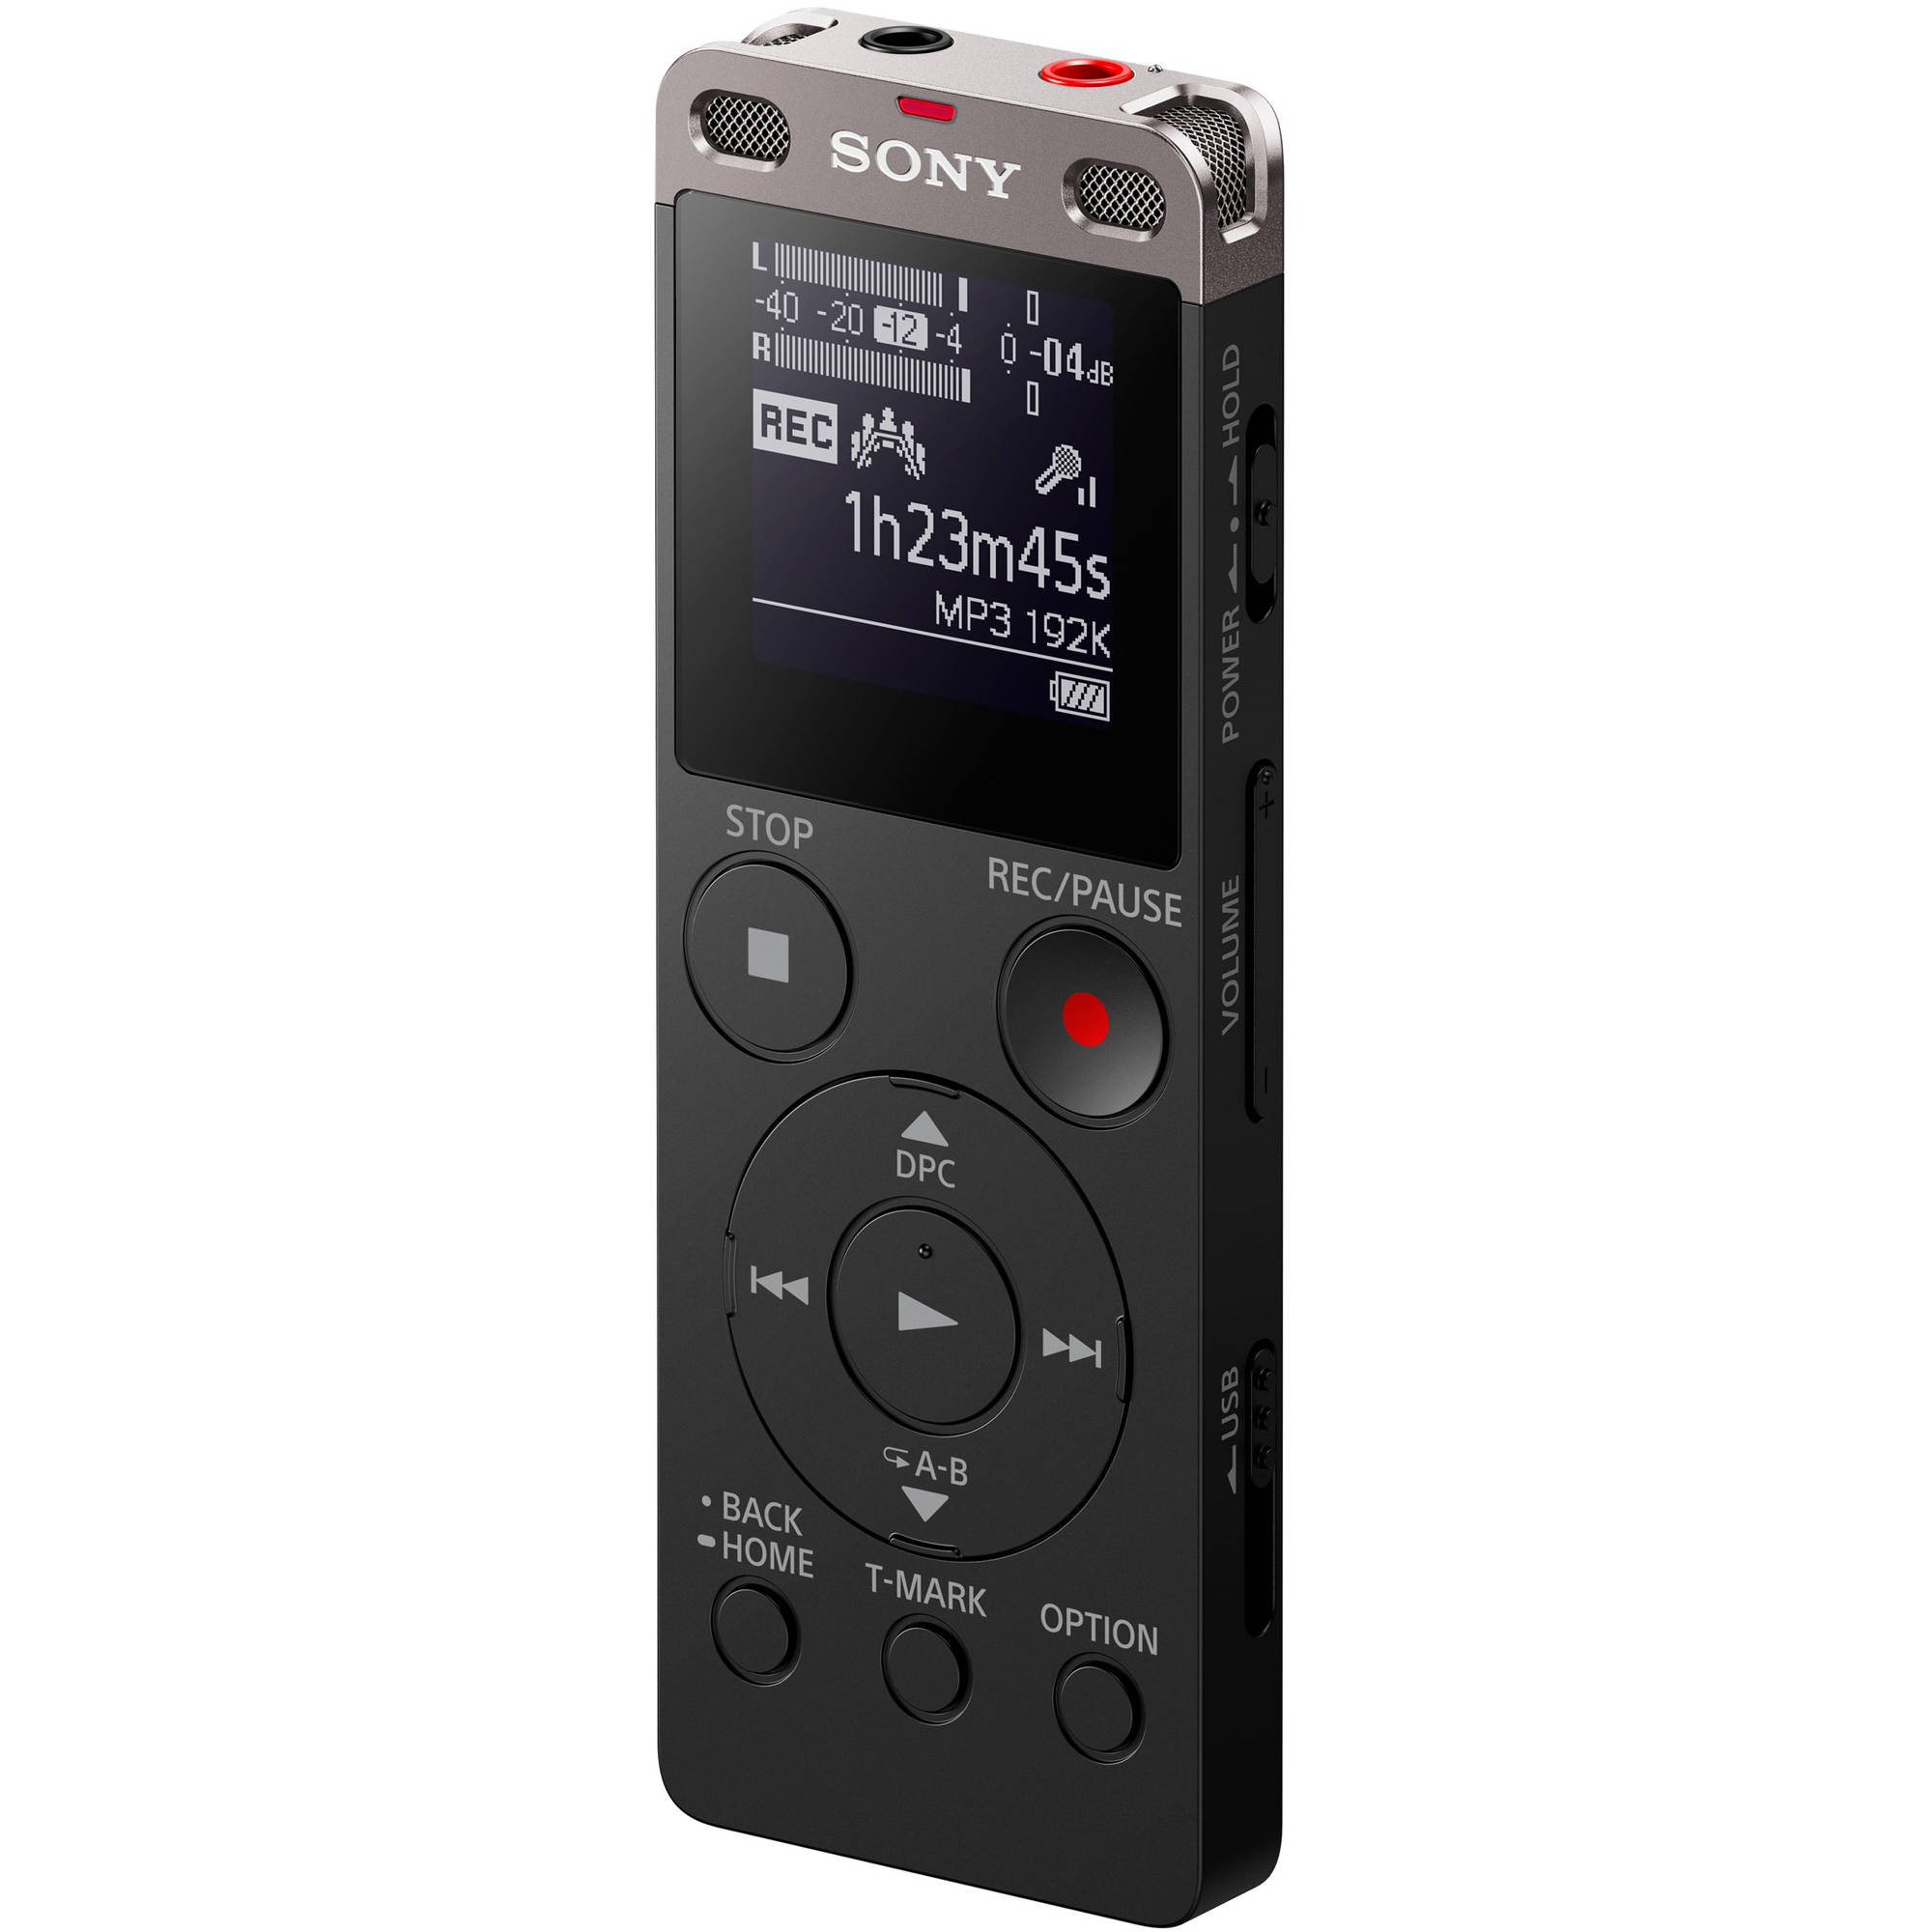 sony icd ux560 digital voice recorder with built in icdux560blk rh bhphotovideo com Sony Digital Voice Recorder Sony ICD-PX333 Digital Voice Recorder